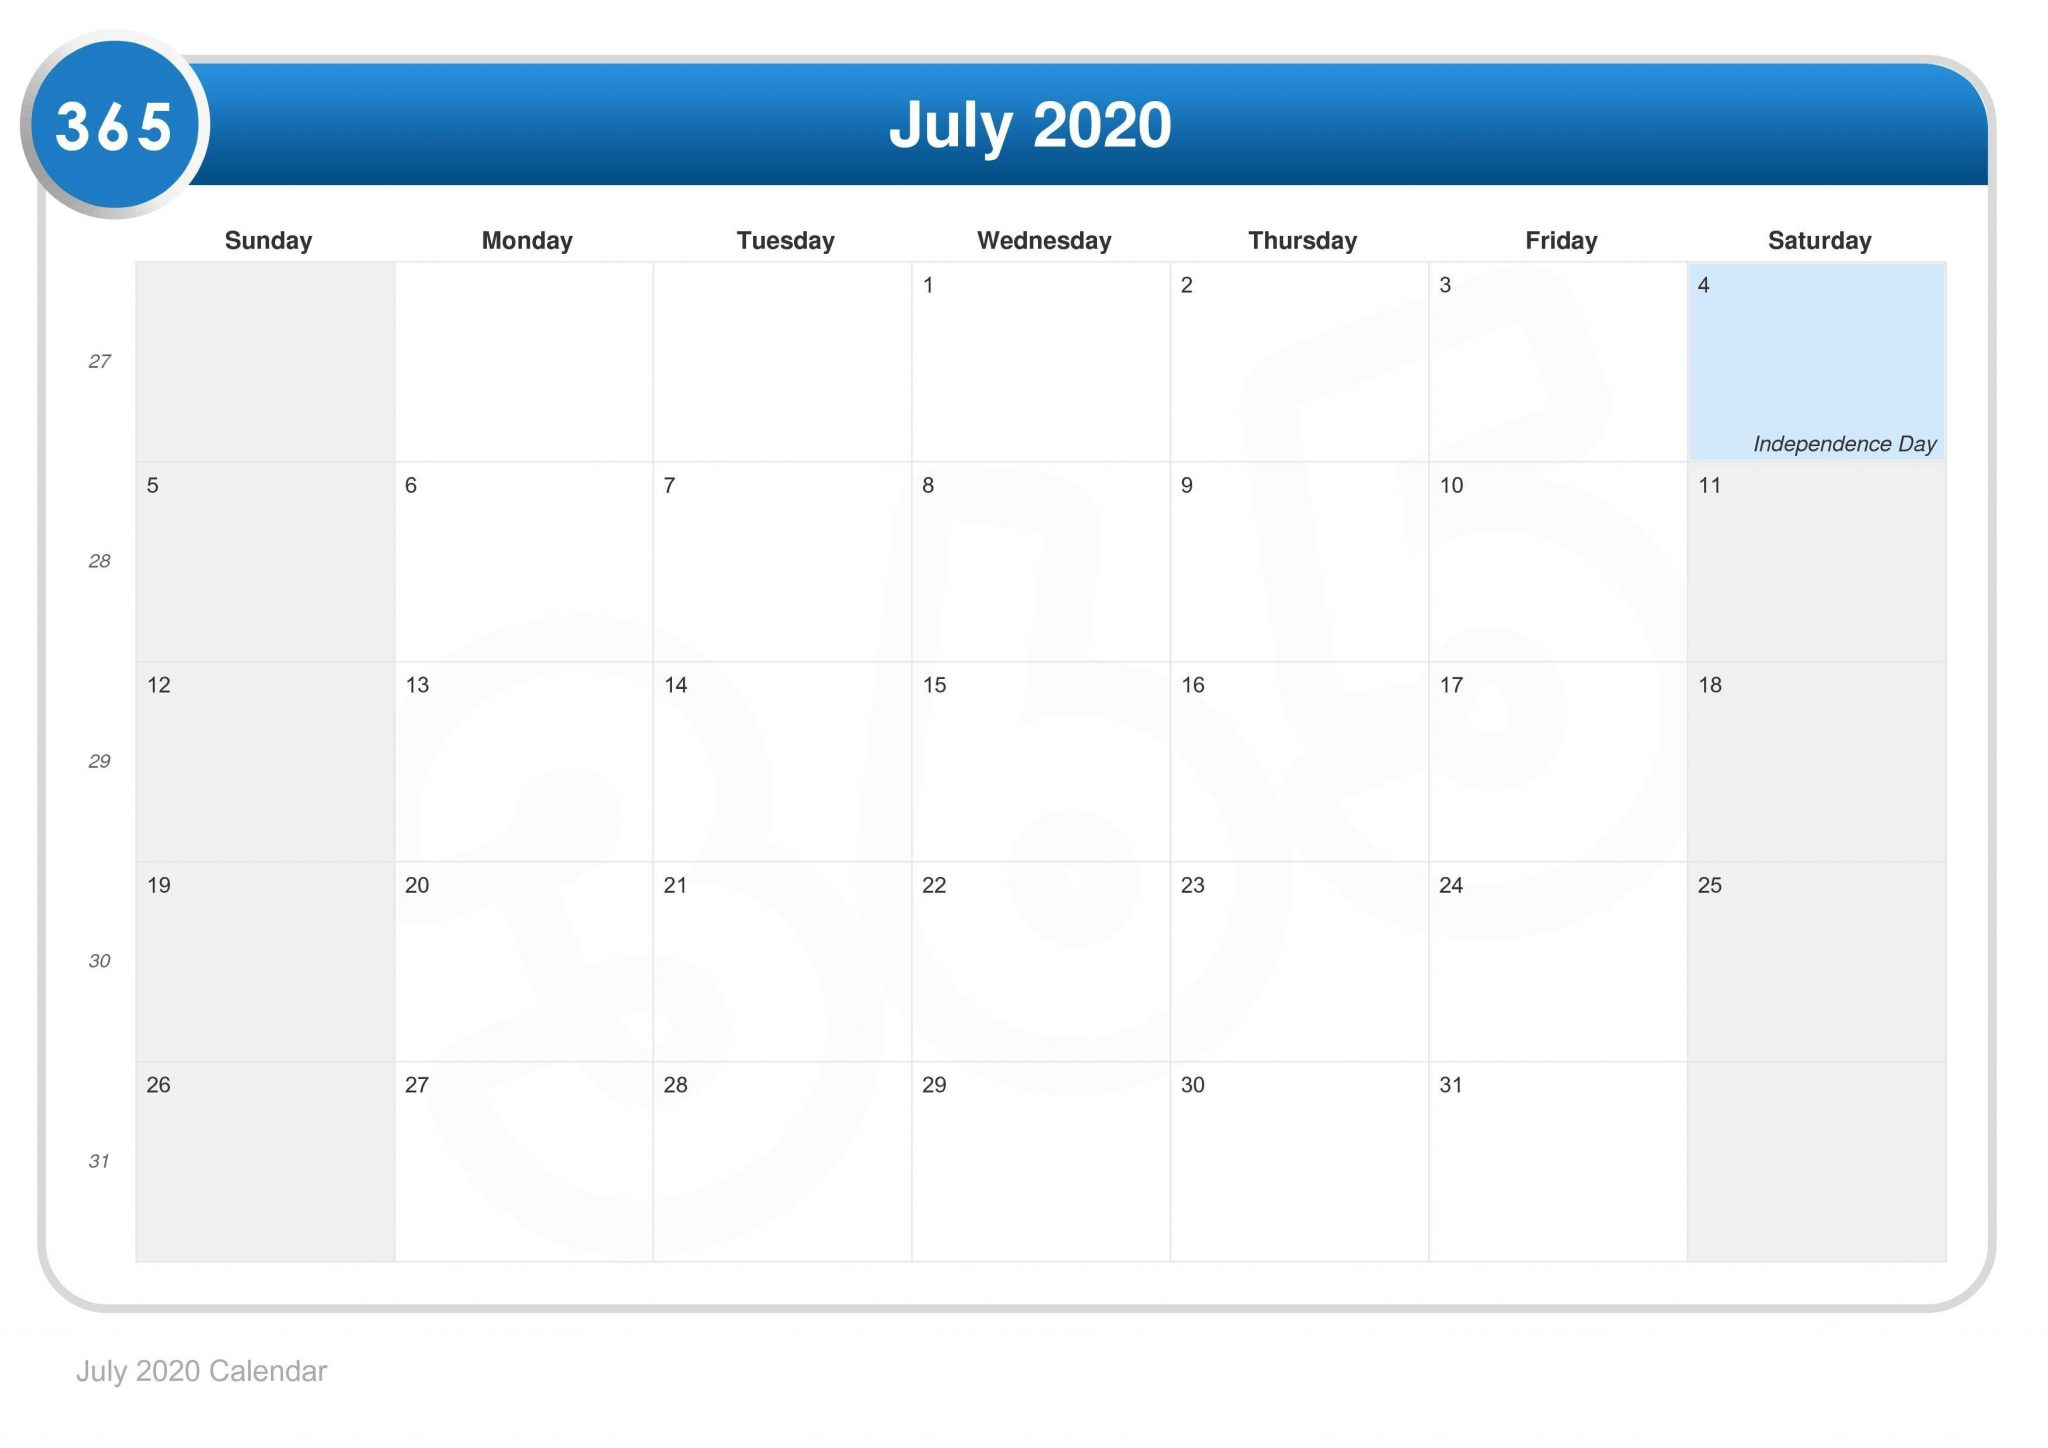 July 2020 calendar Holidays Template Scaled